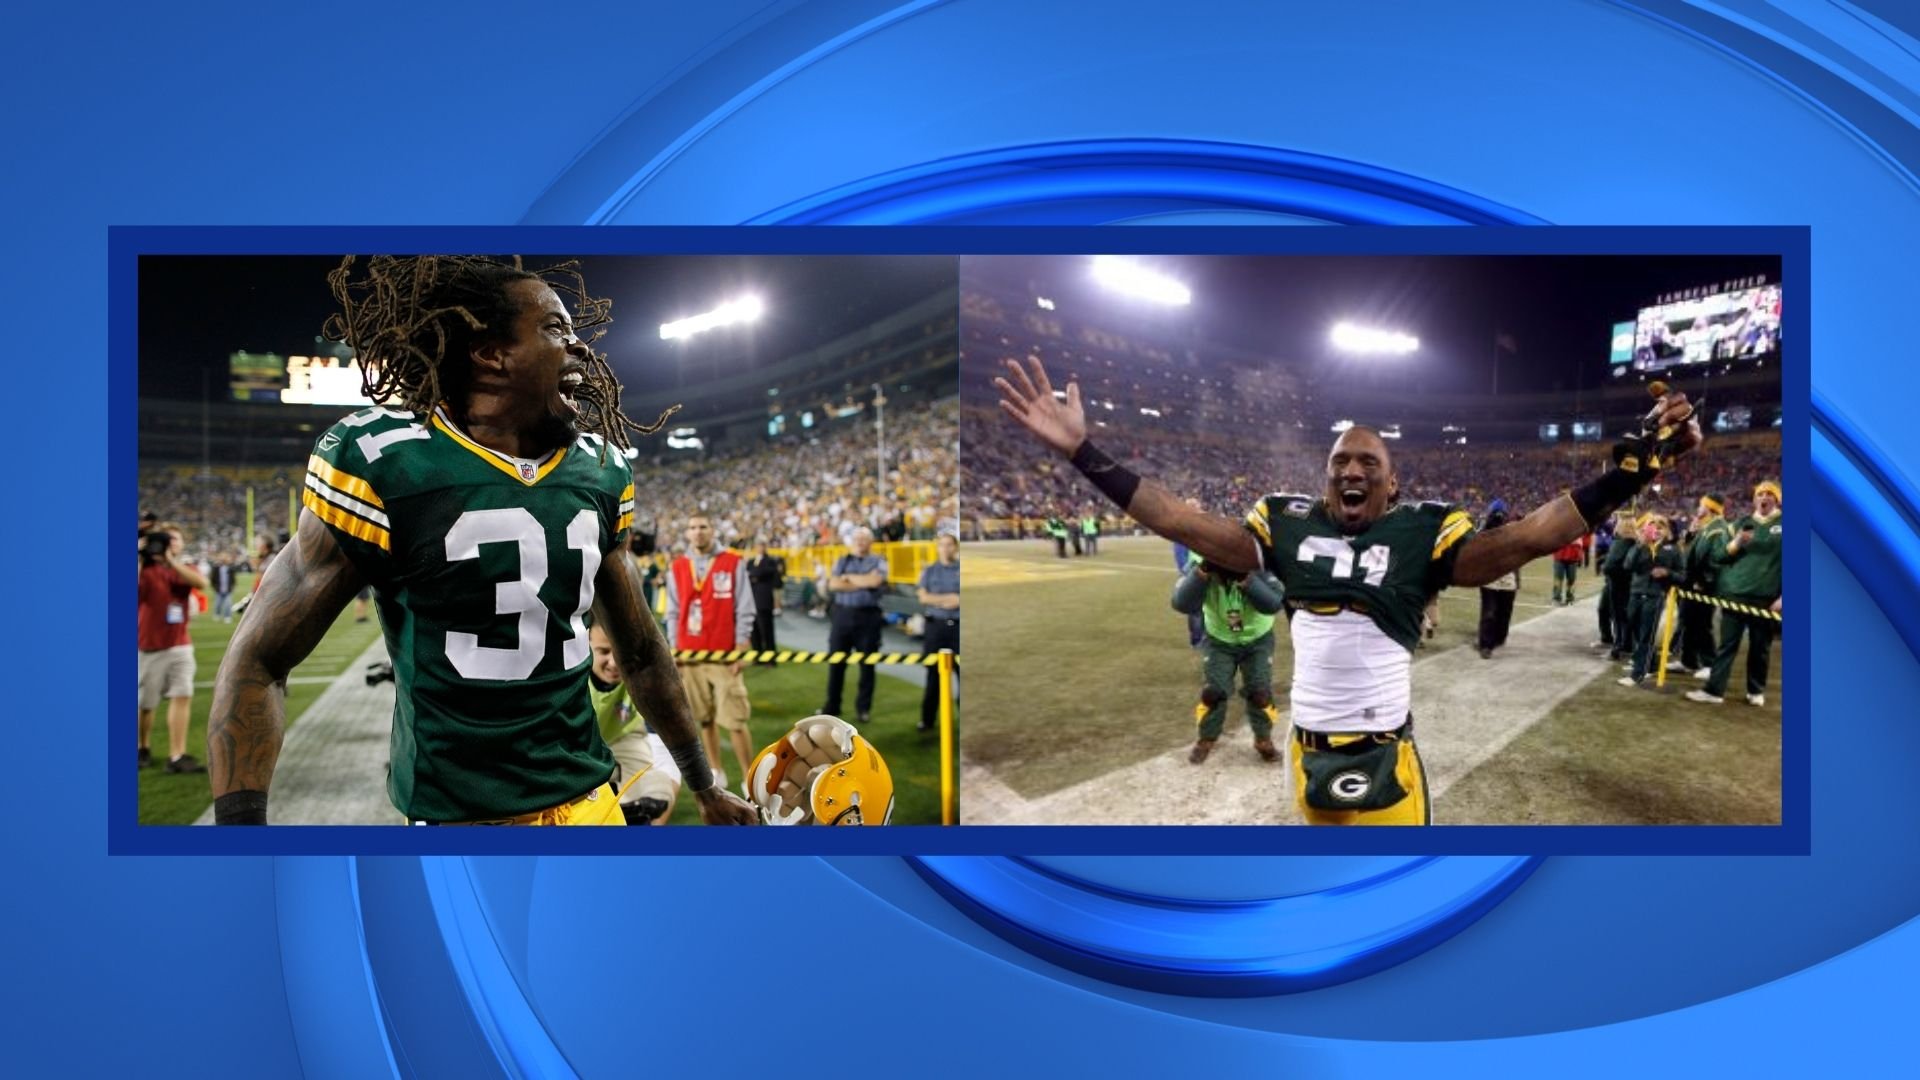 Charles Woodson, Al Harris to be inducted into Packers Hall of Fame on Aug. 28